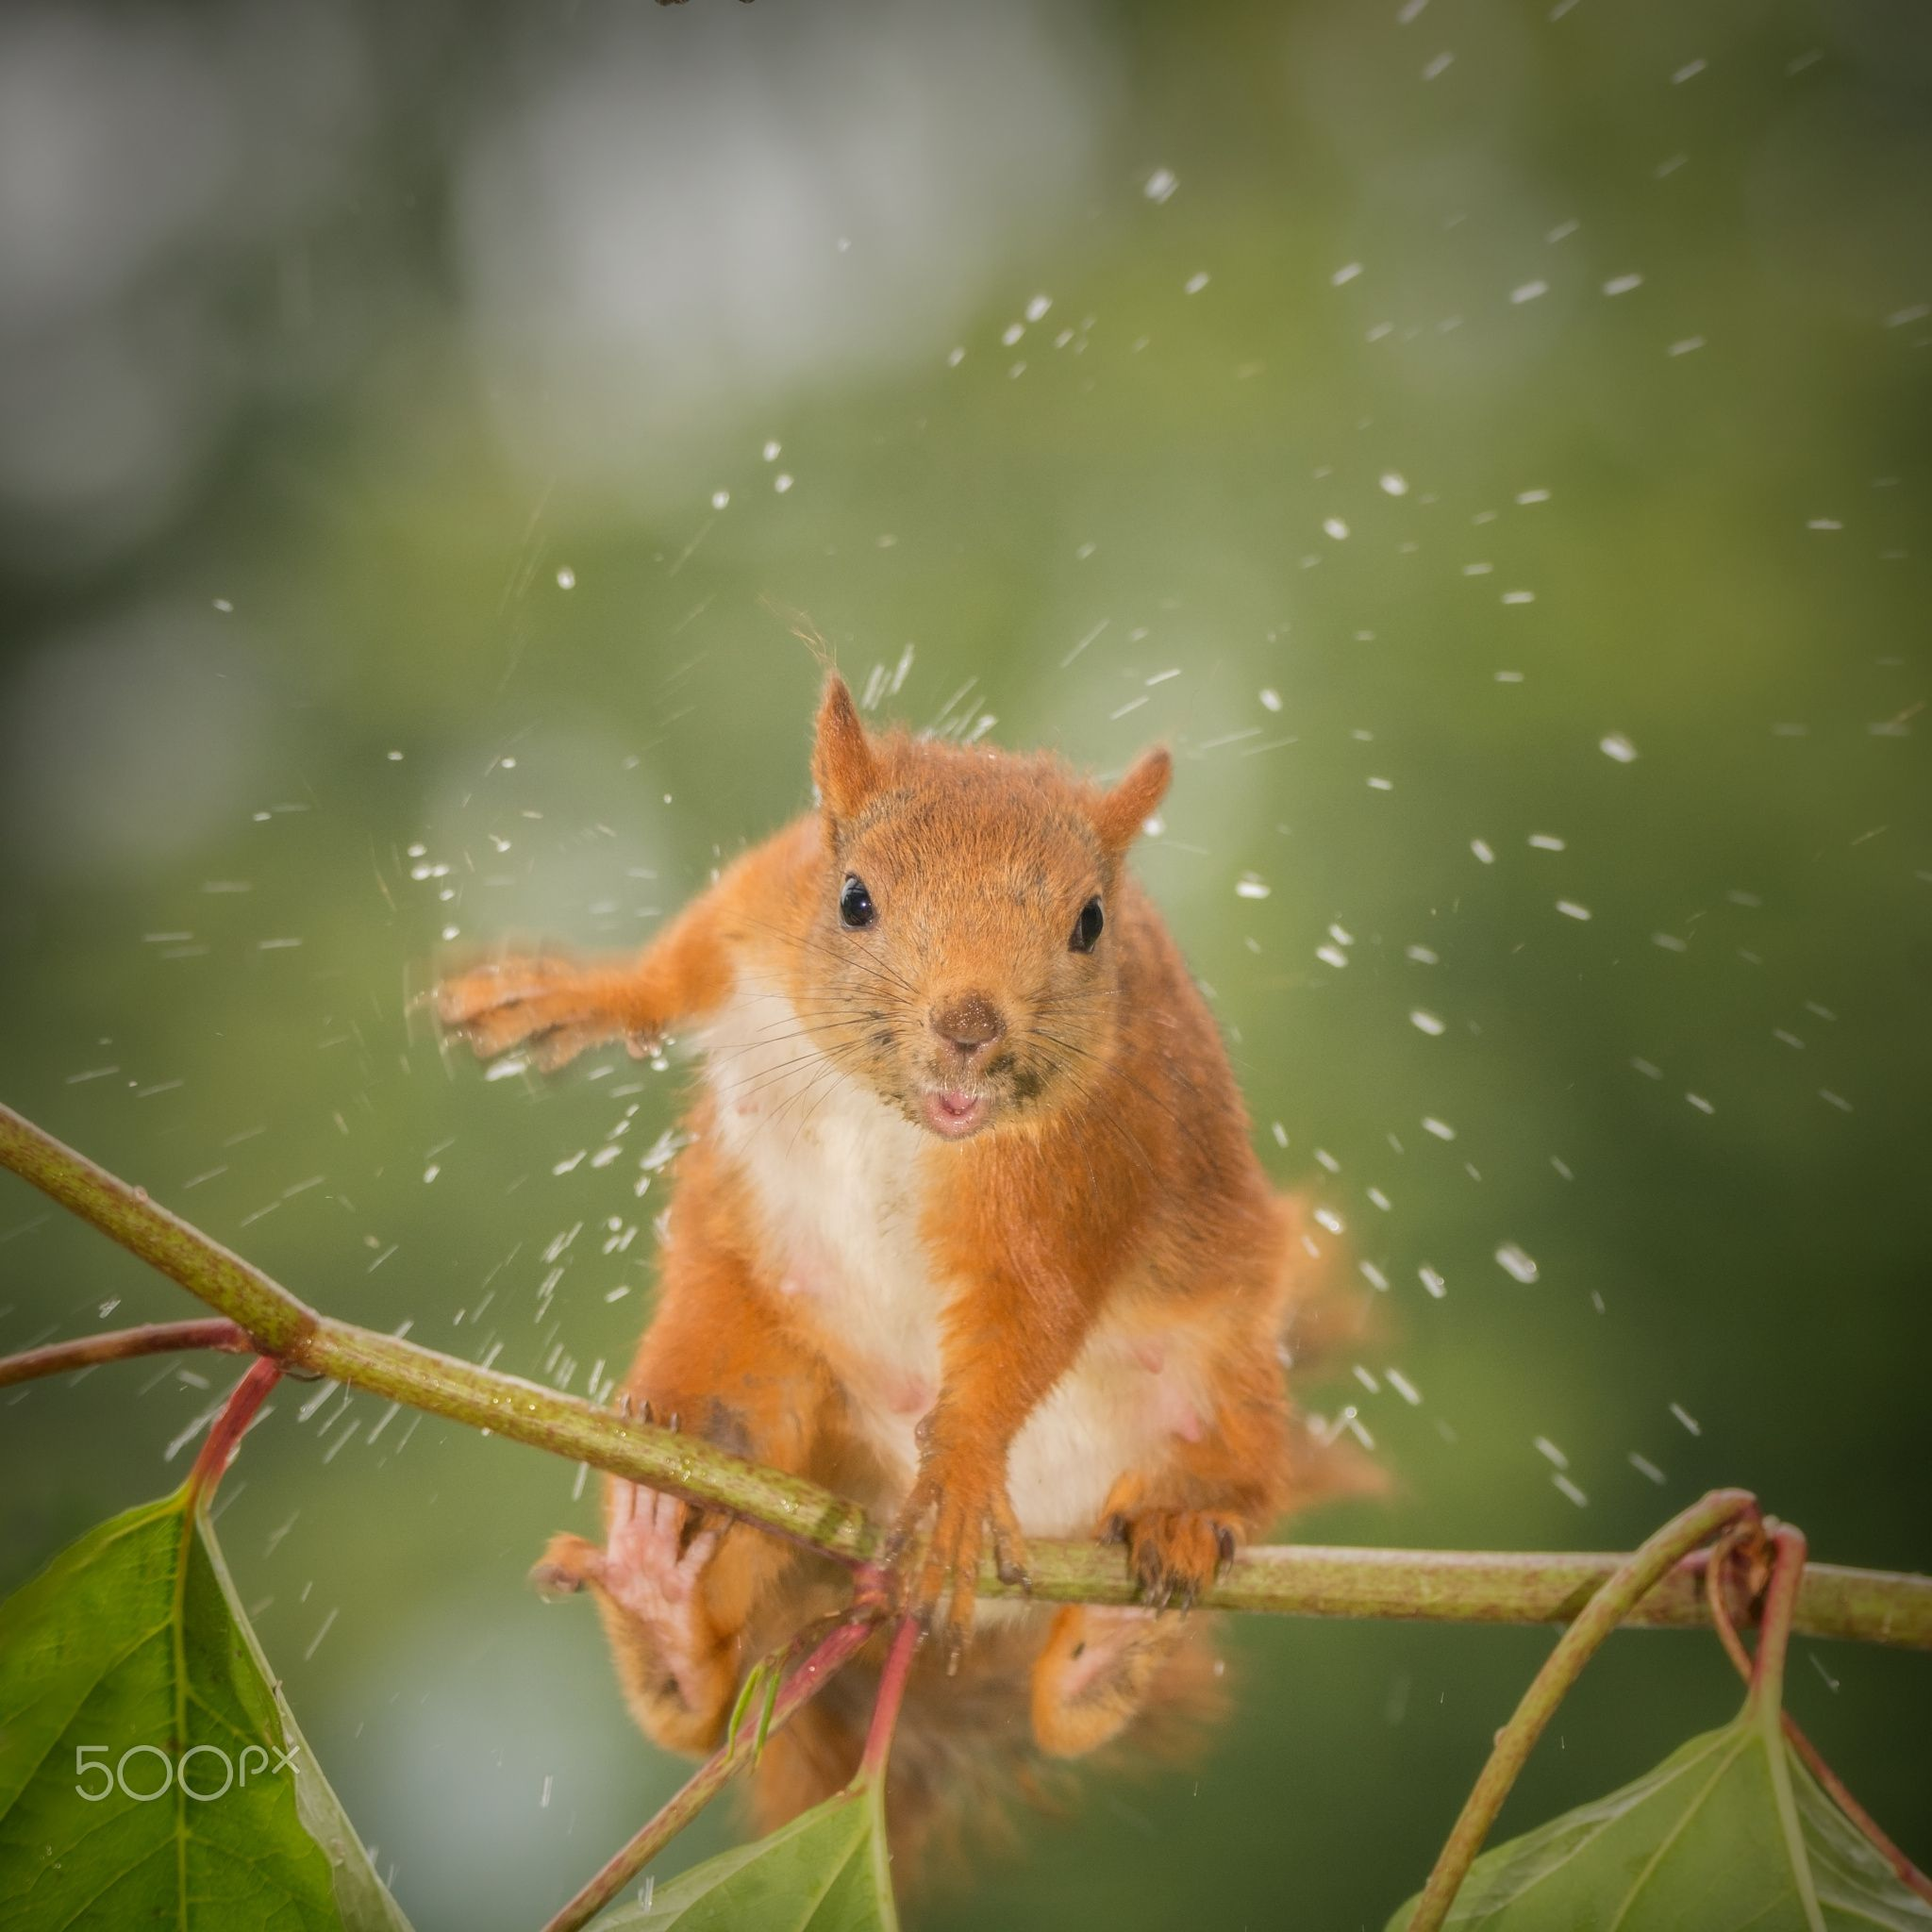 shake it of - close up of wet red squirrel standing on a branch looking in  the lens shaking out water only focused on the head | Squirrel, Red  squirrel, Animals